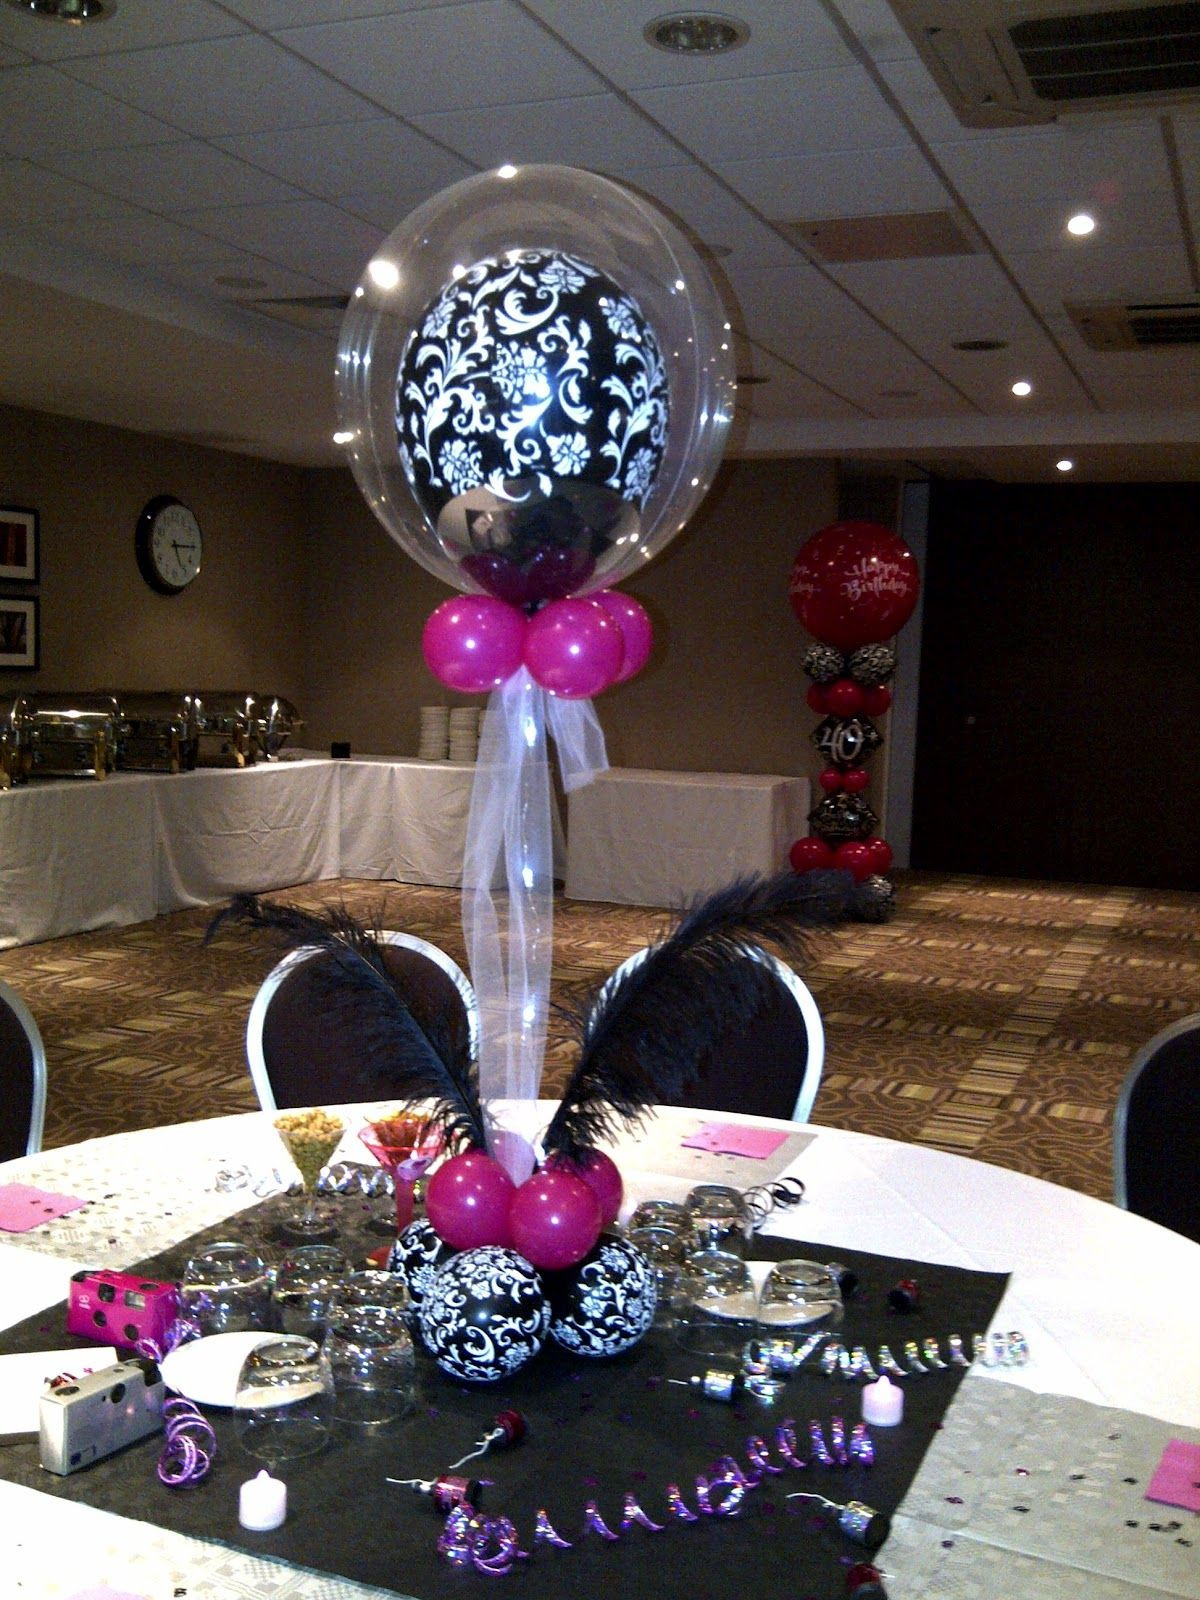 Best ideas about Purple And Silver Birthday Decorations . Save or Pin Purple and Silver Party Decorations Now.